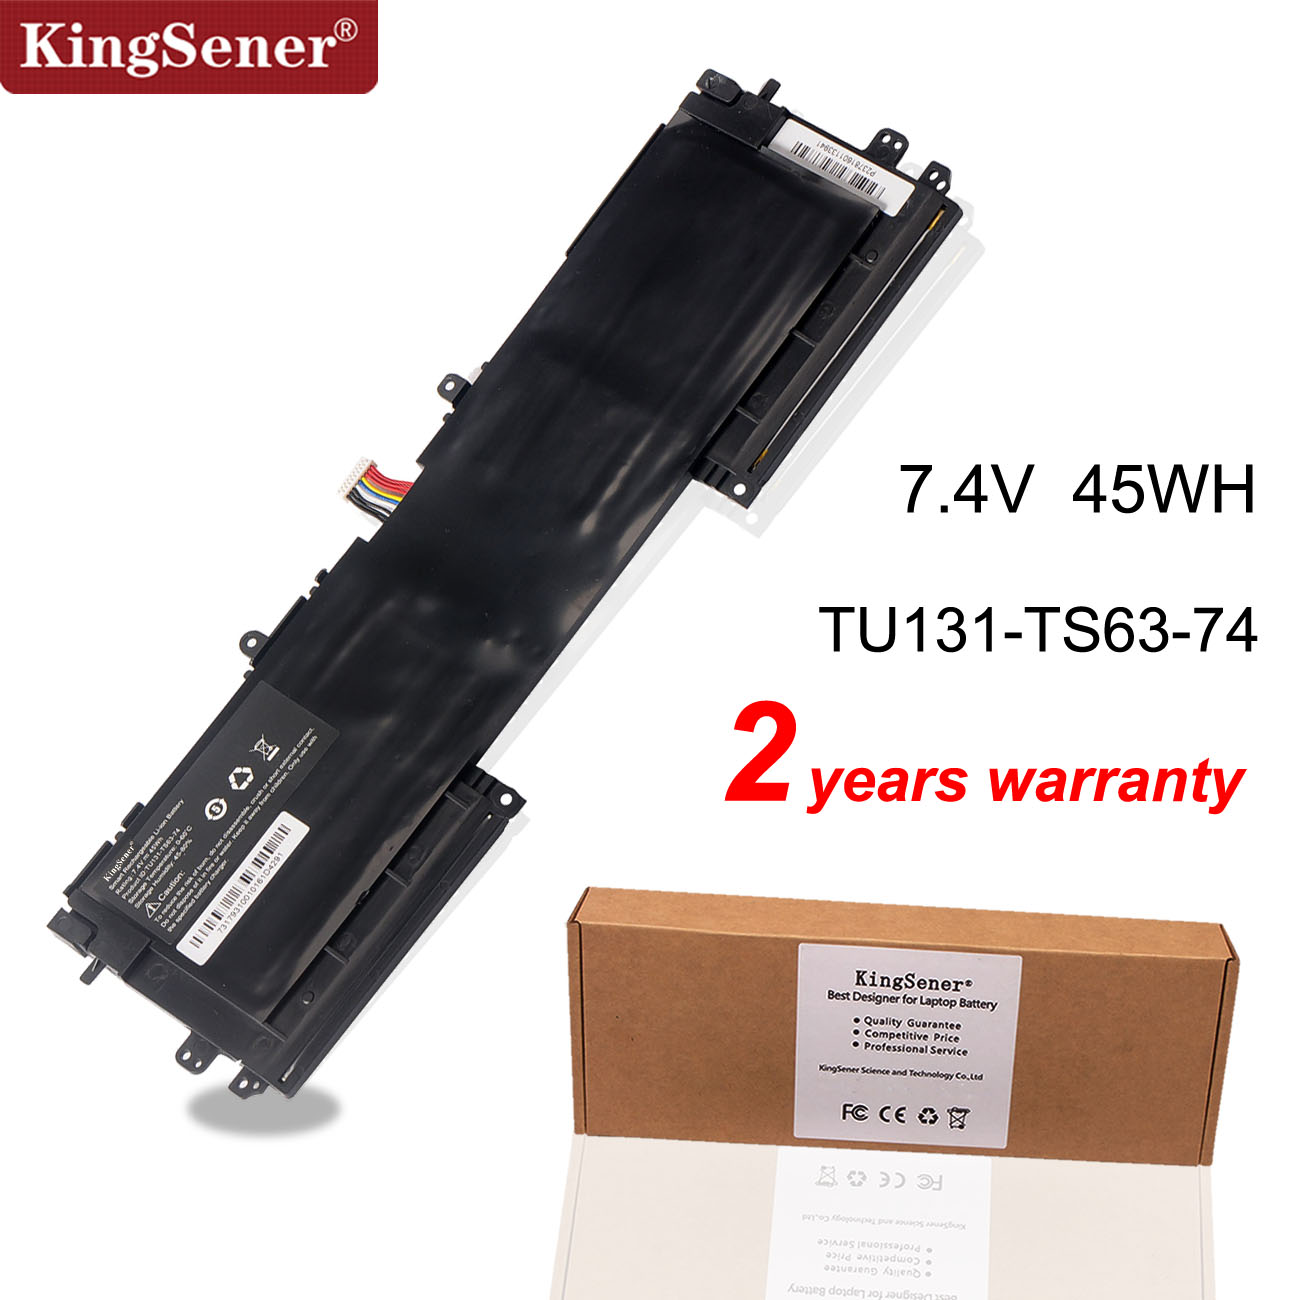 KingSener 7.4V 45WH TU131-TS63-74 TU131 Laptop Battery For DELL XPS13 8808 U13S881 U33X UX32K U731 TU131-TS63-74